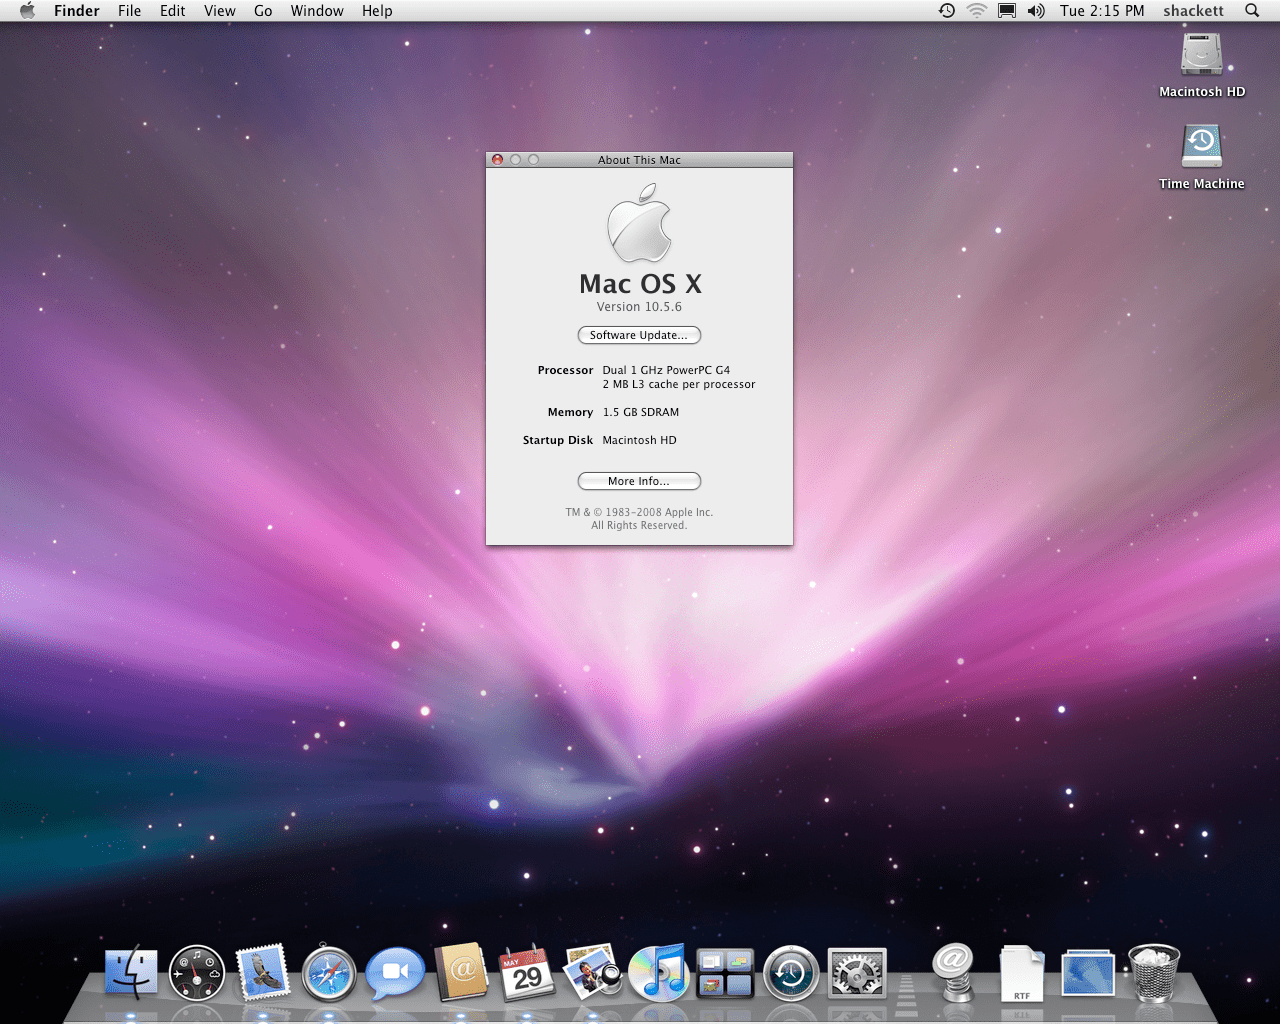 10-5-Leopard-About-This-Mac